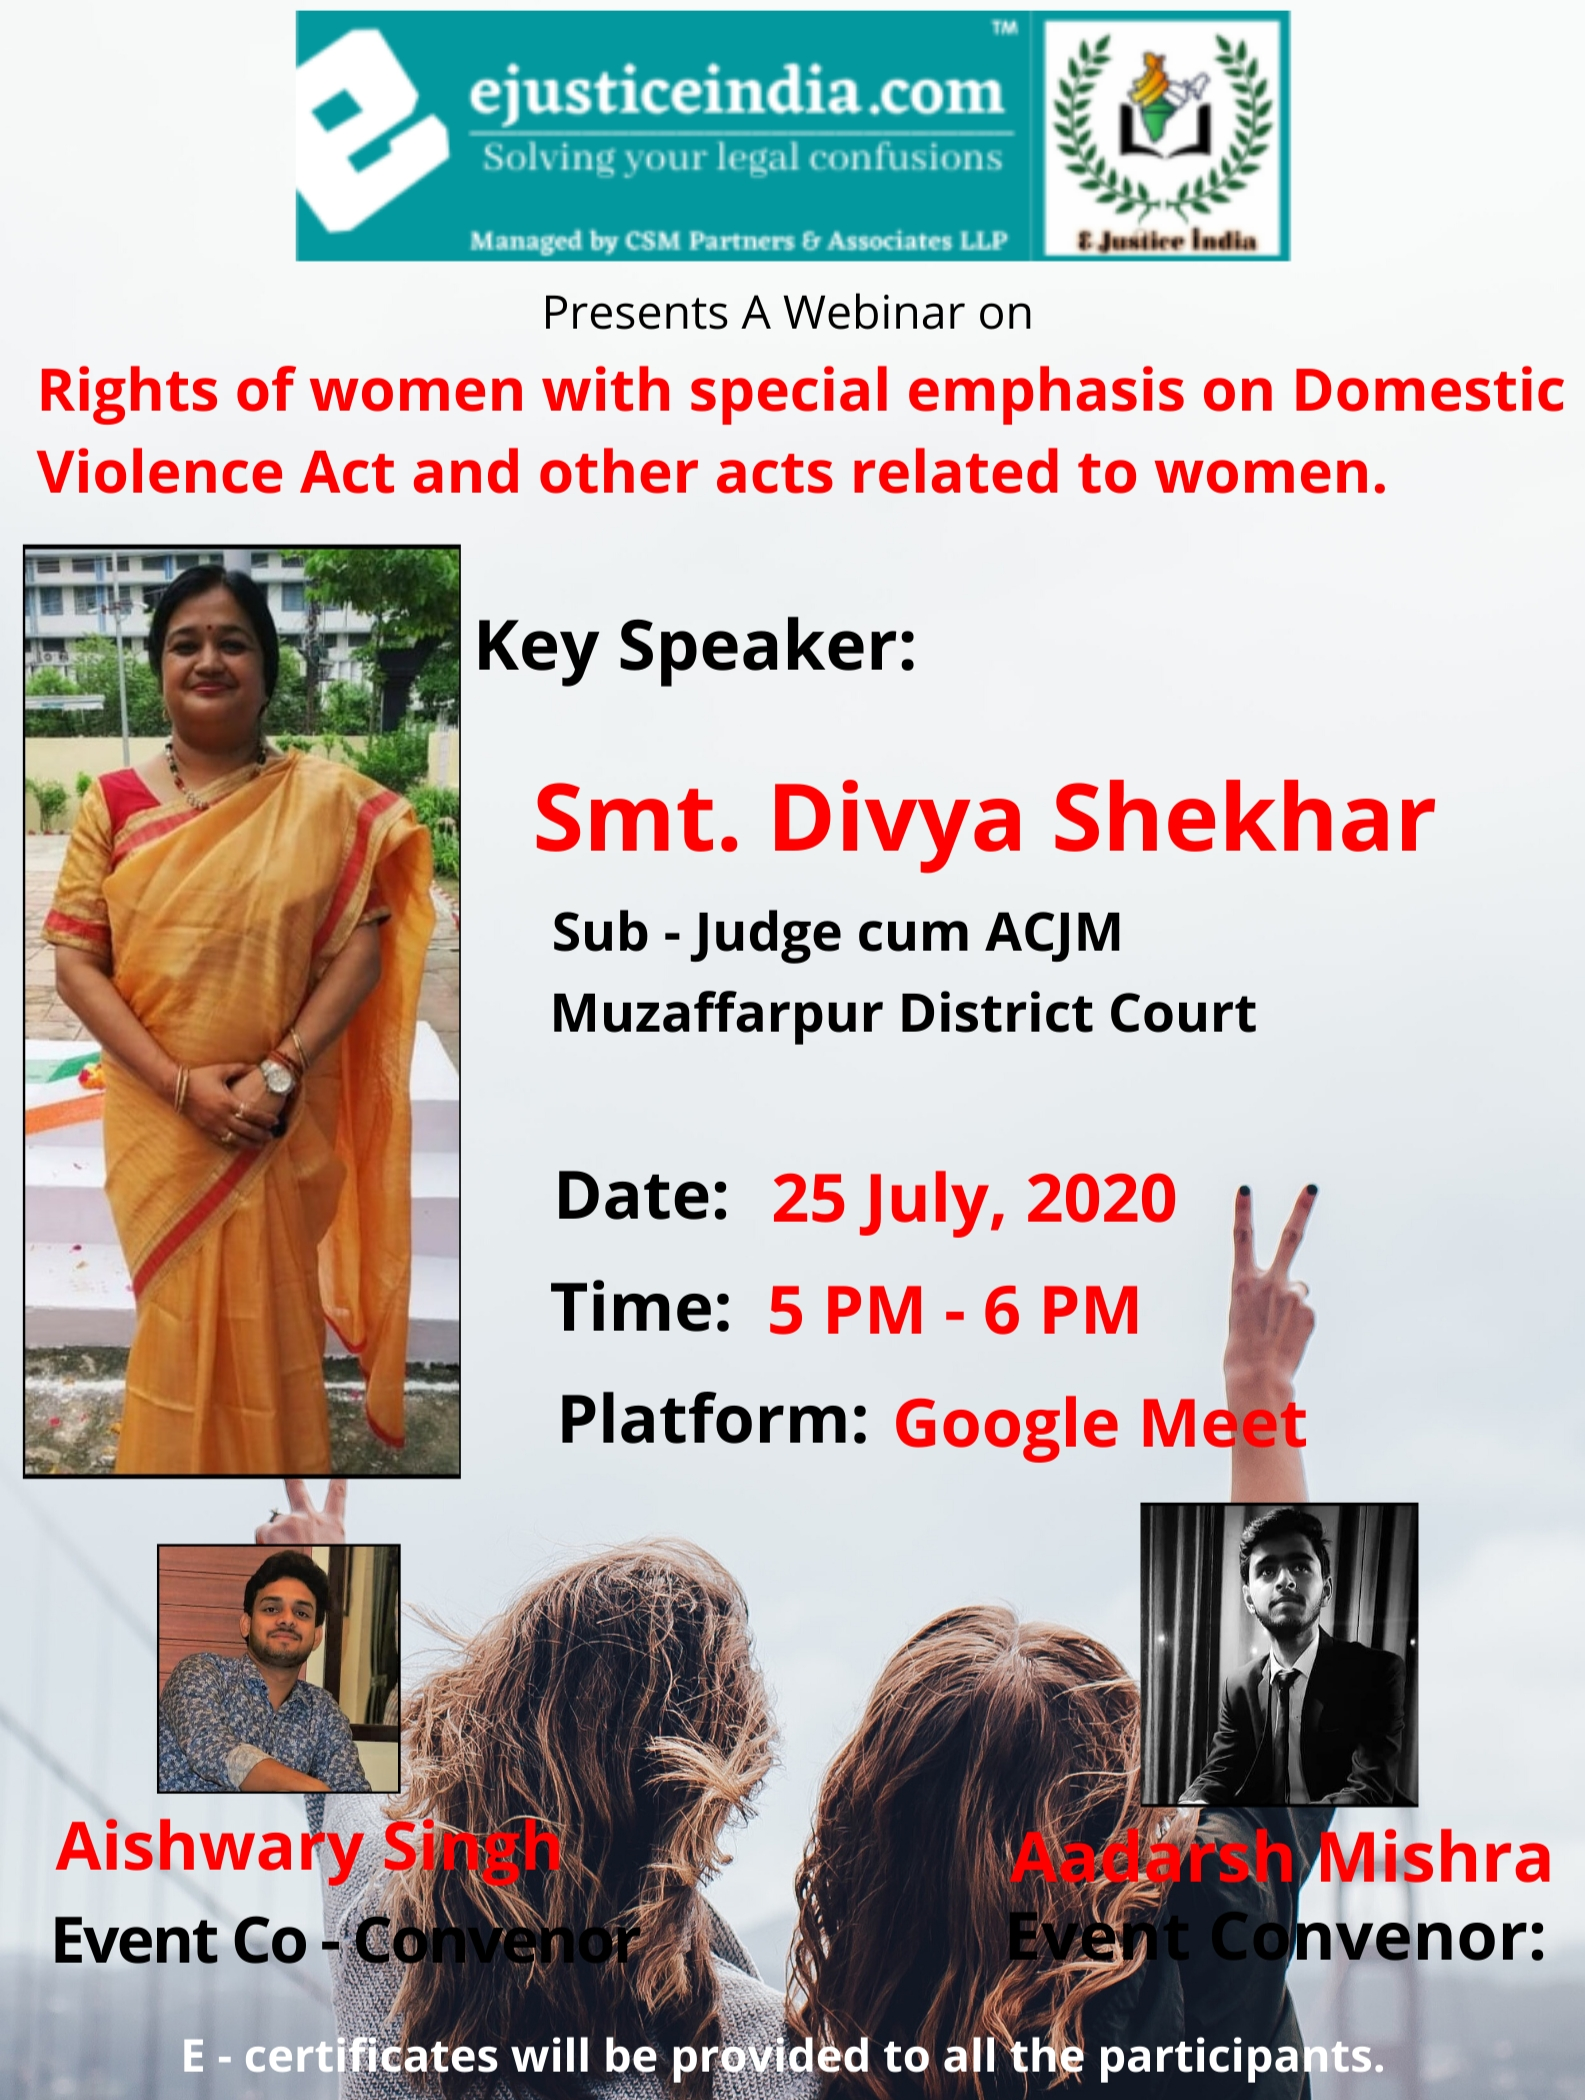 e-justice-india-is-organizing-a-webinar-on-rights-of-women